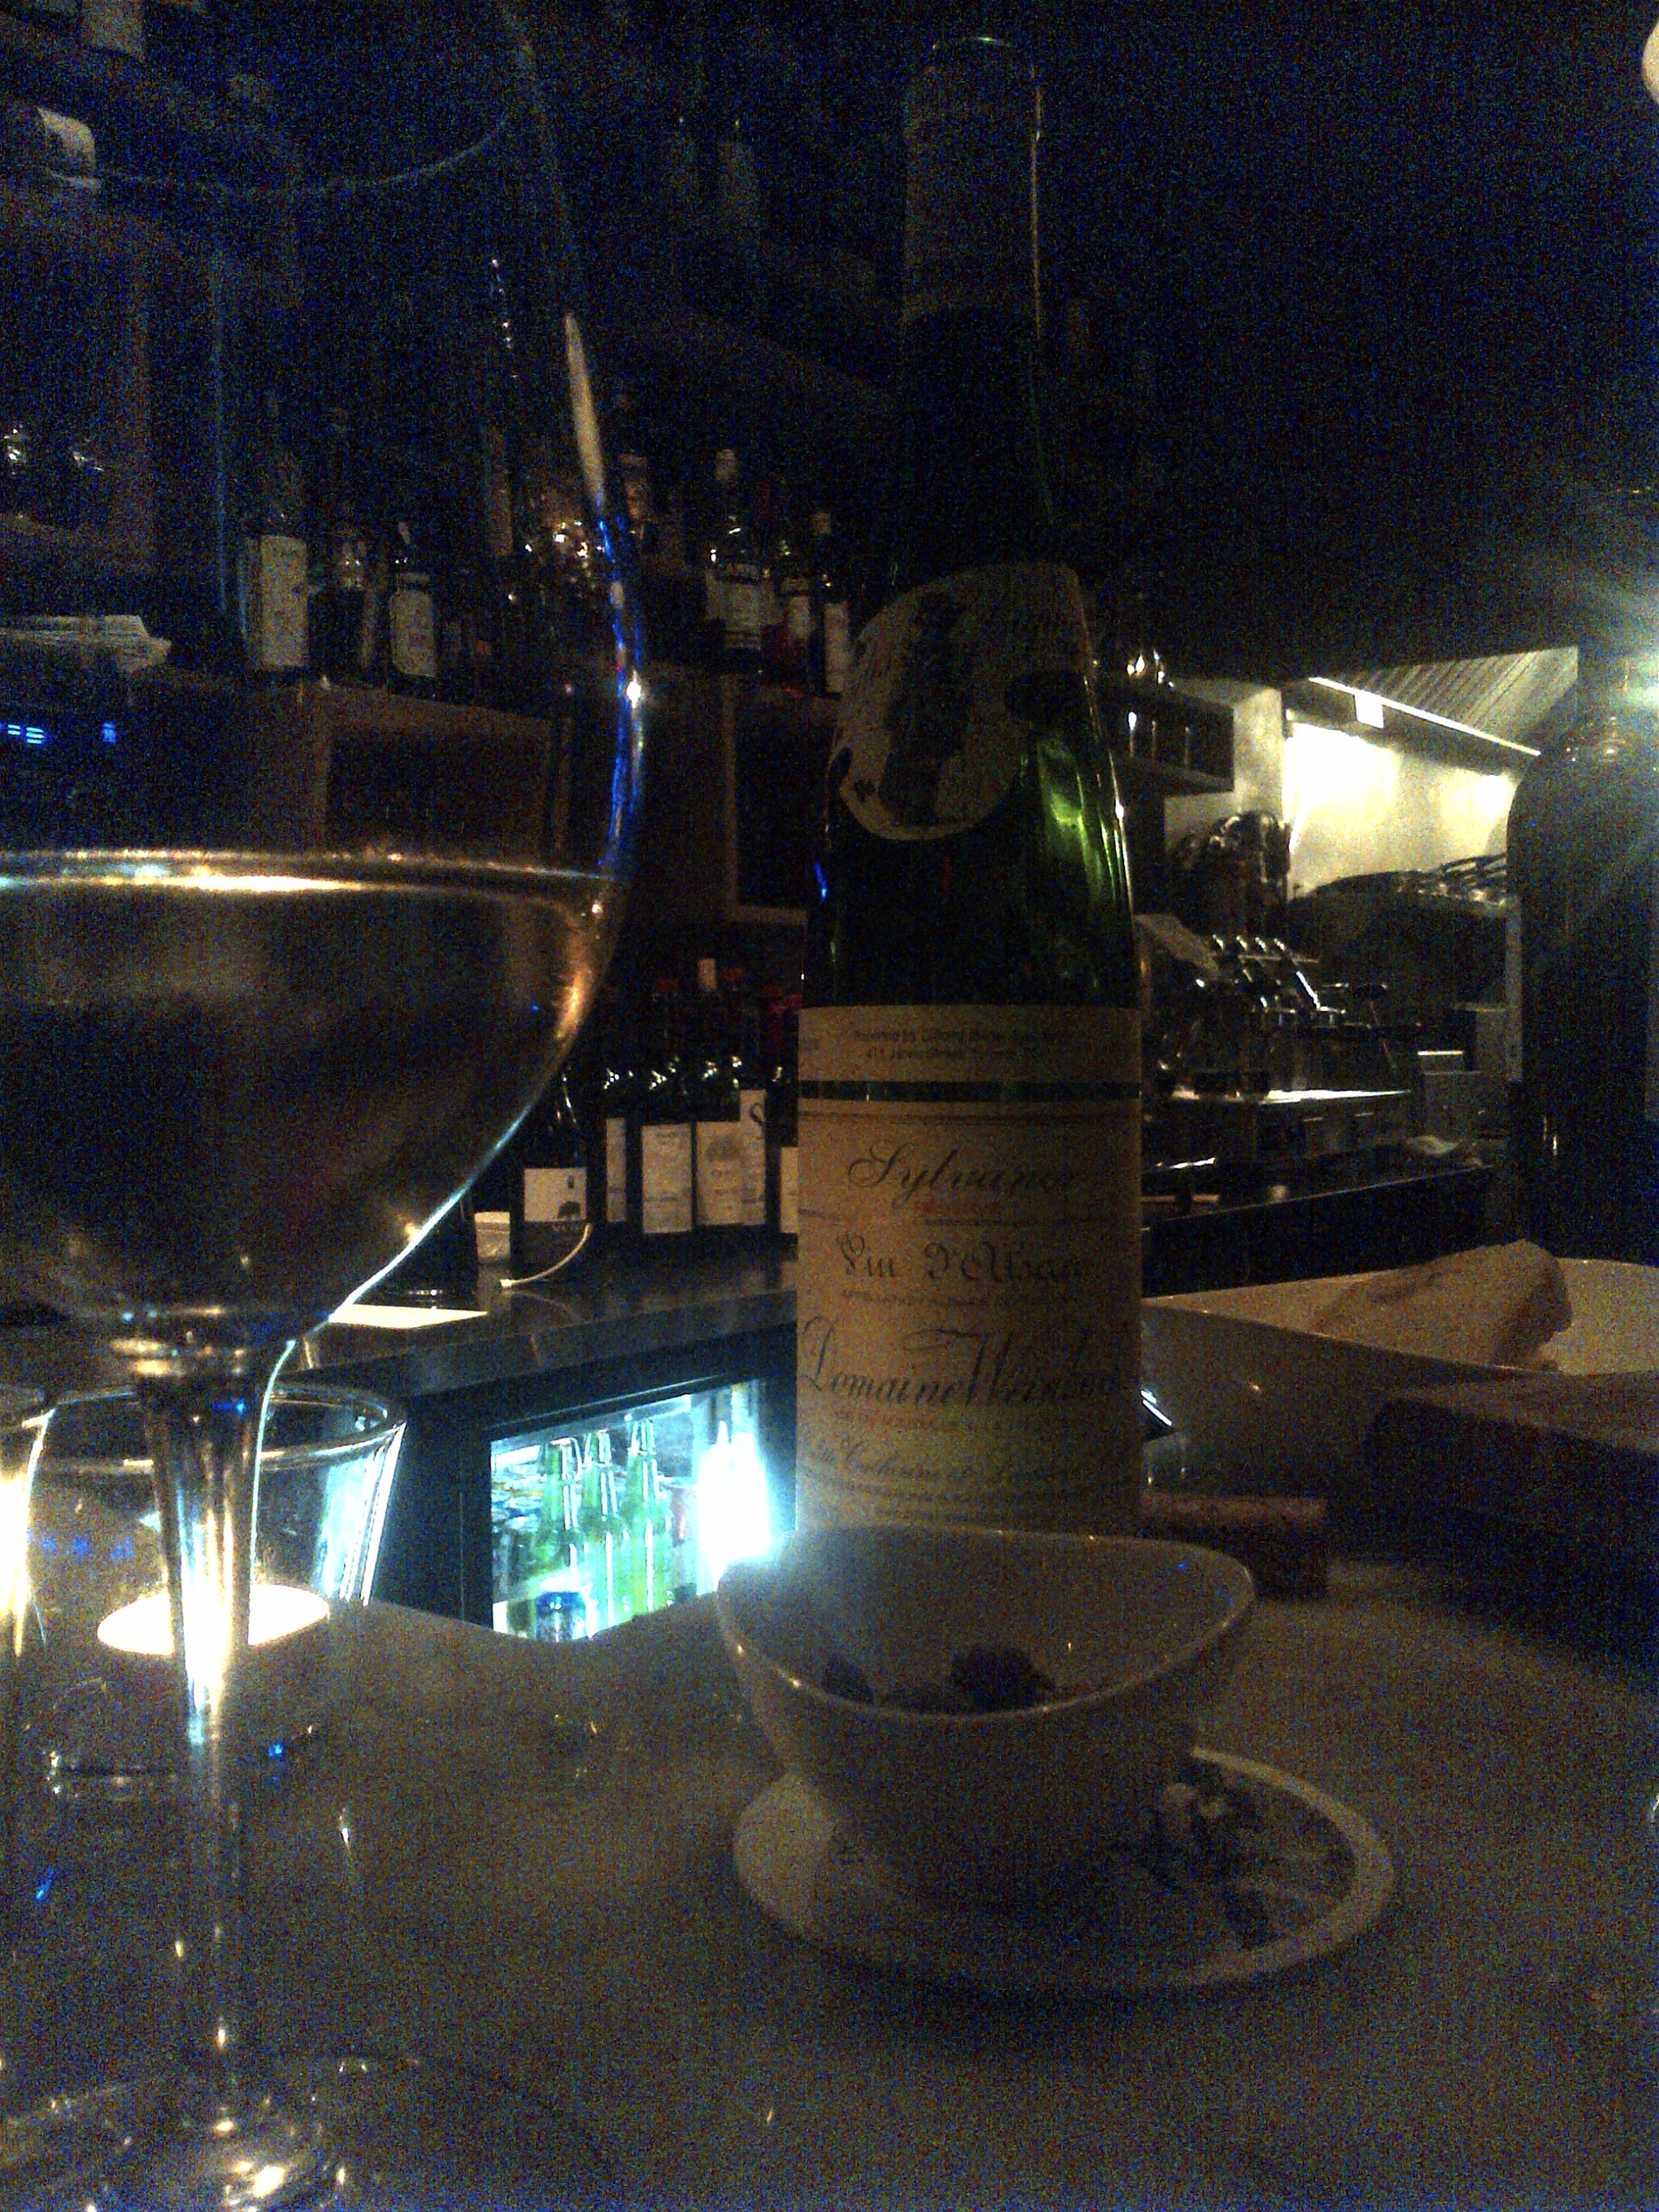 Half price wine night at Enoteca Ascari in Toronto clearly means Domaine Weinbach for everyone!